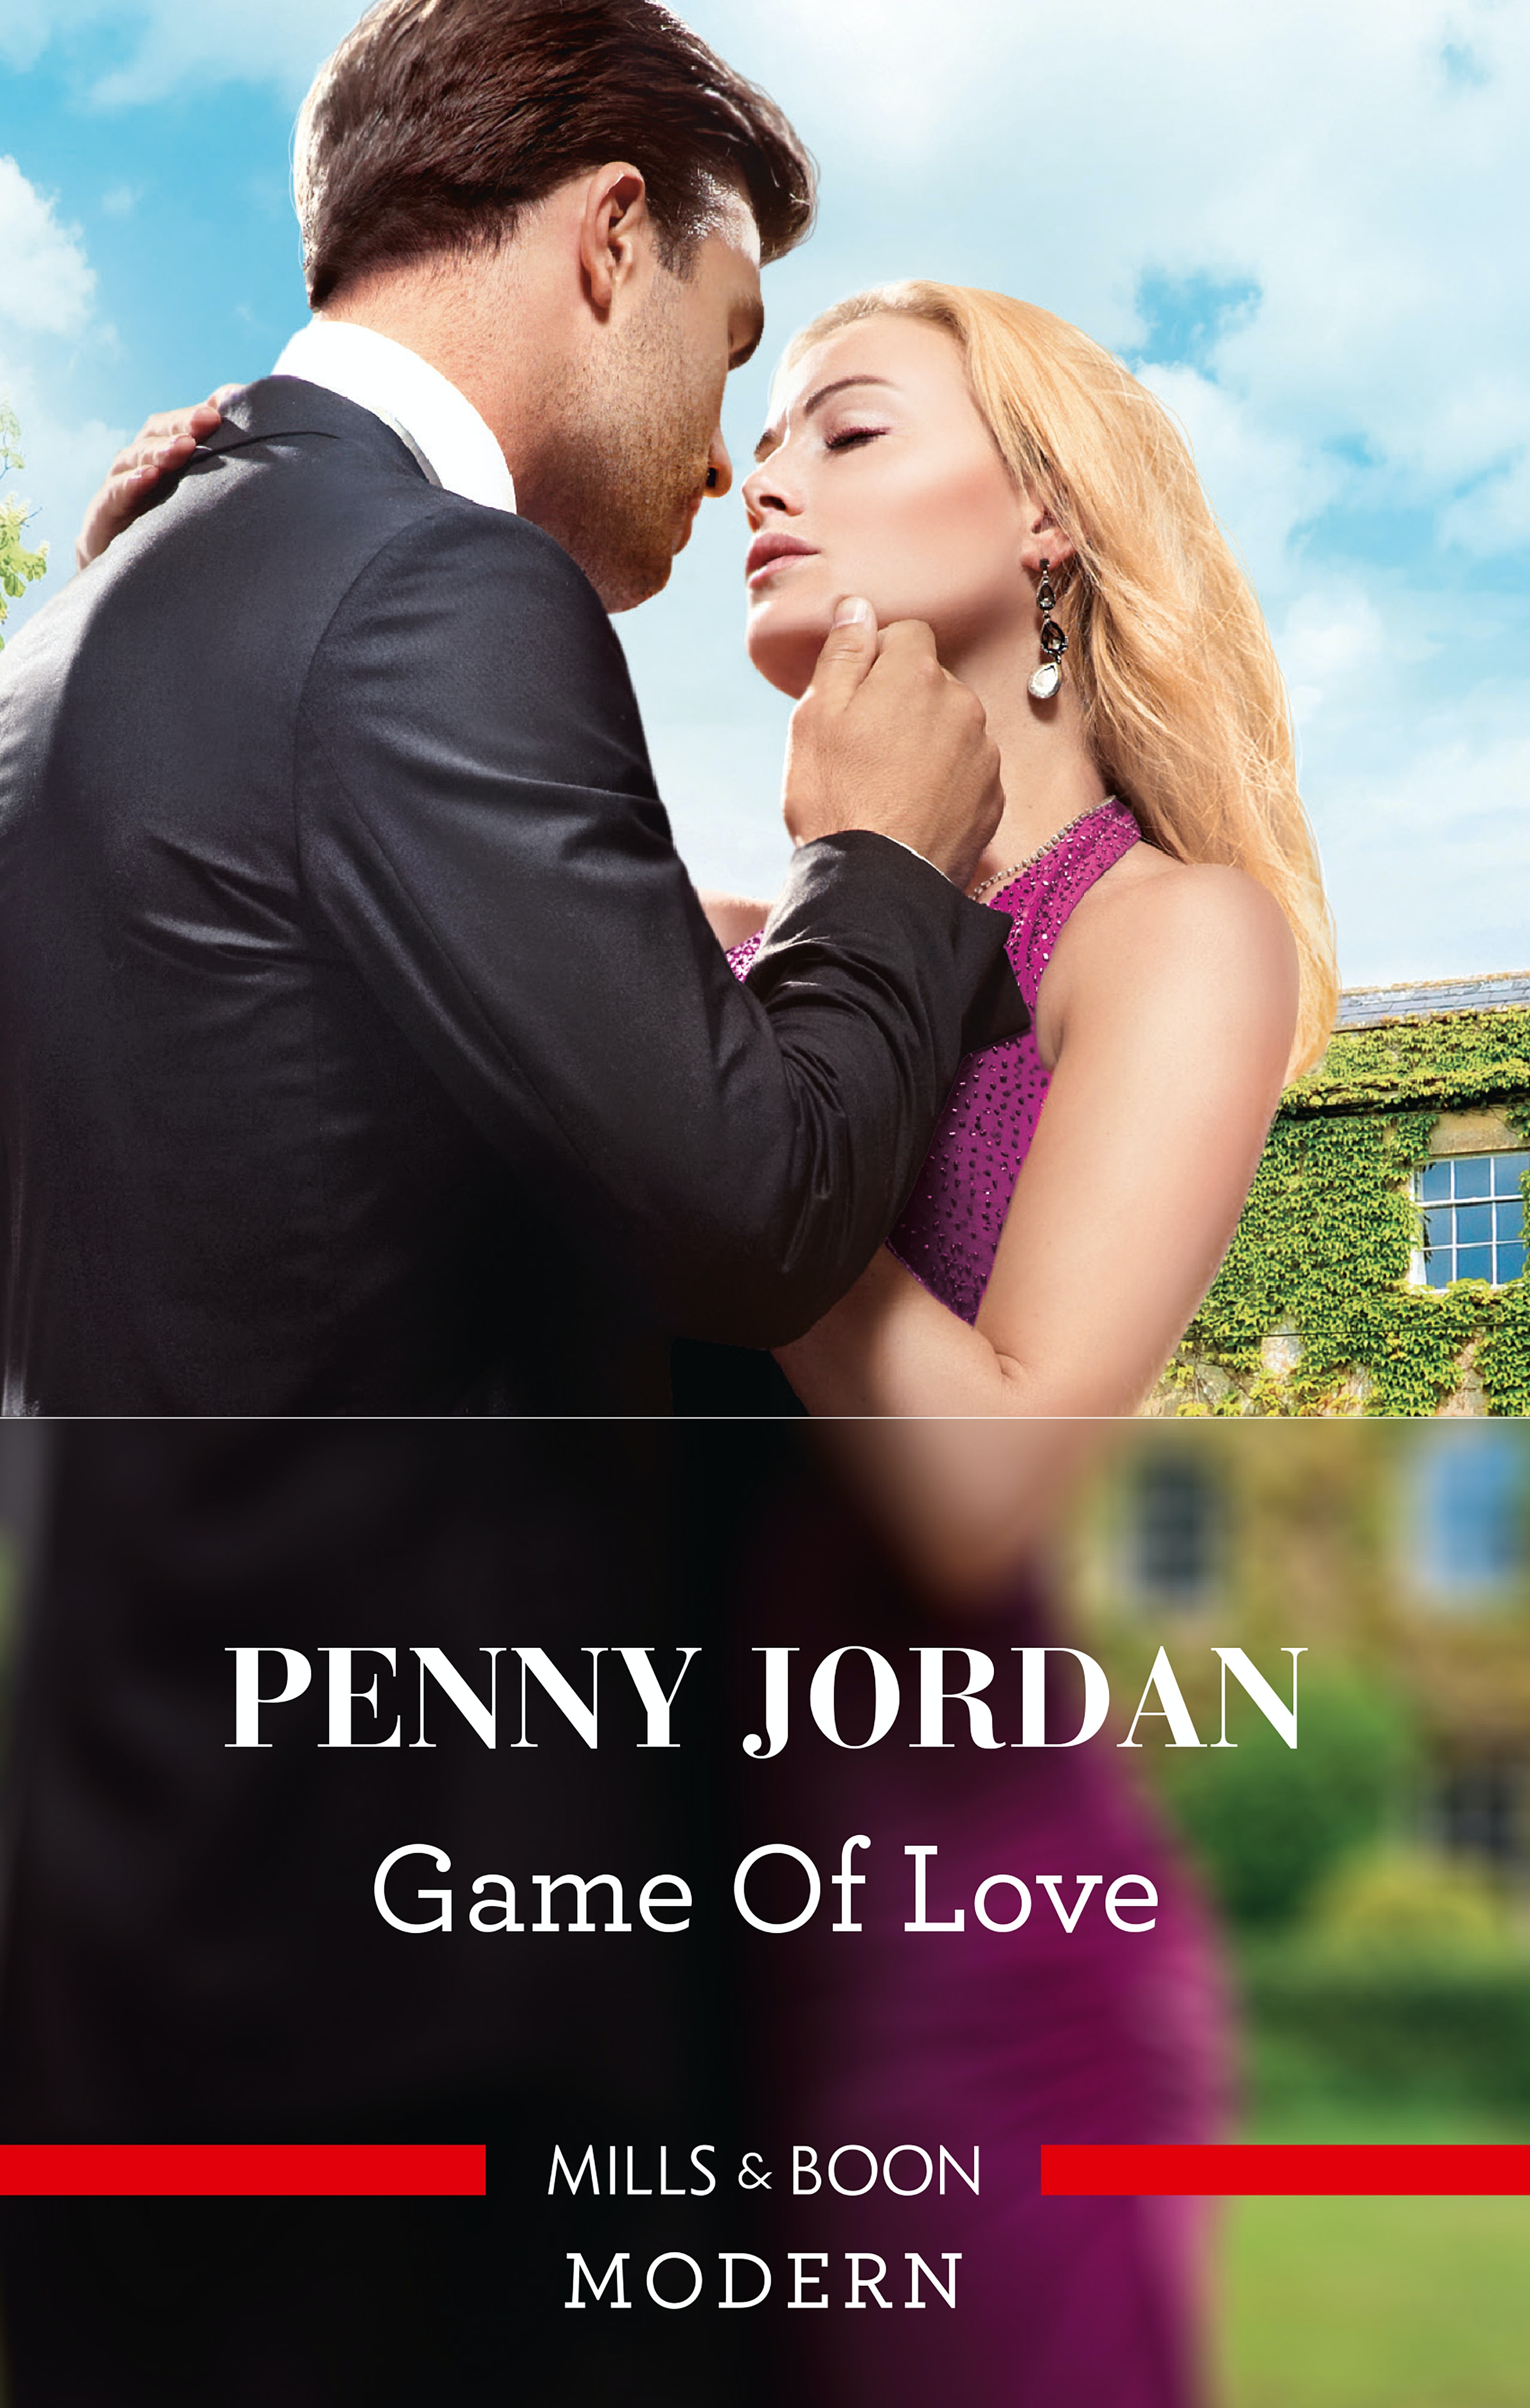 Marriage Without Love (Mills & Boon Modern) (Penny Jordan Collection)